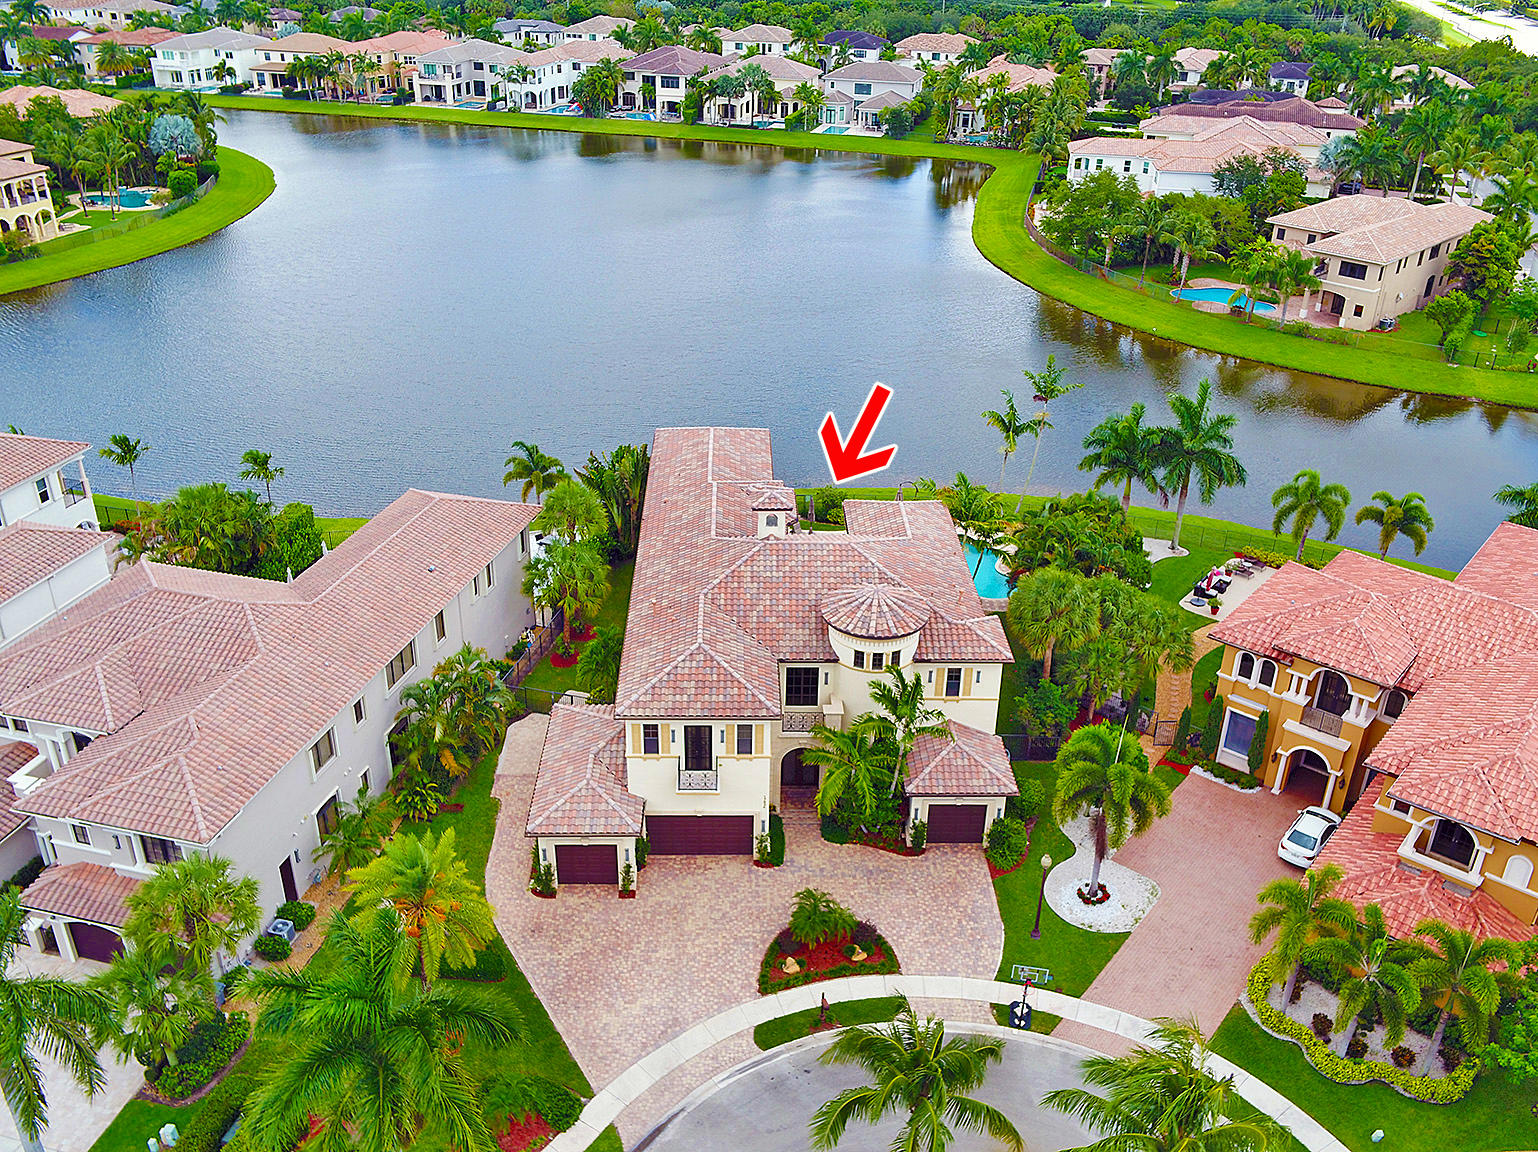 17934 Monte Vista Drive, Boca Raton, Florida 33496, 6 Bedrooms Bedrooms, ,6.2 BathroomsBathrooms,Single family detached,For sale,Monte Vista,RX-10587513